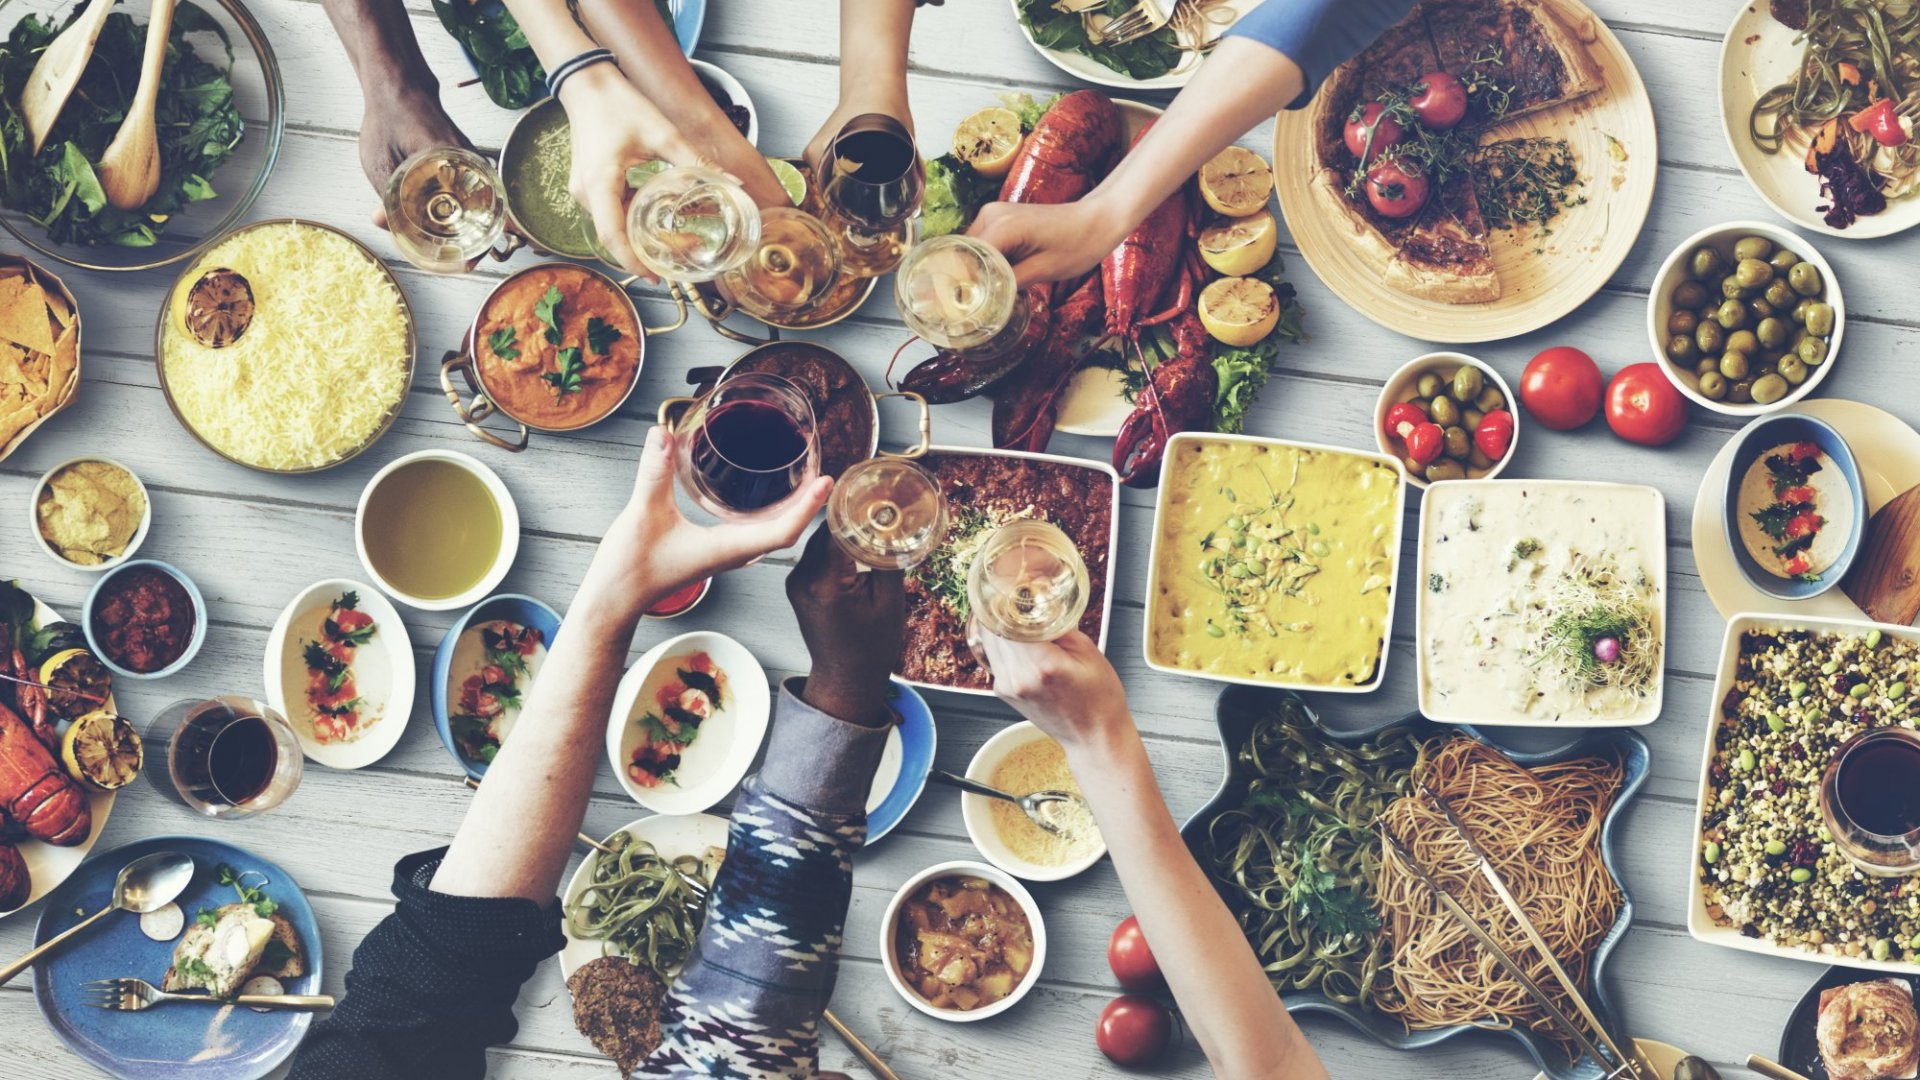 Why You Should Go to Lunch, Today